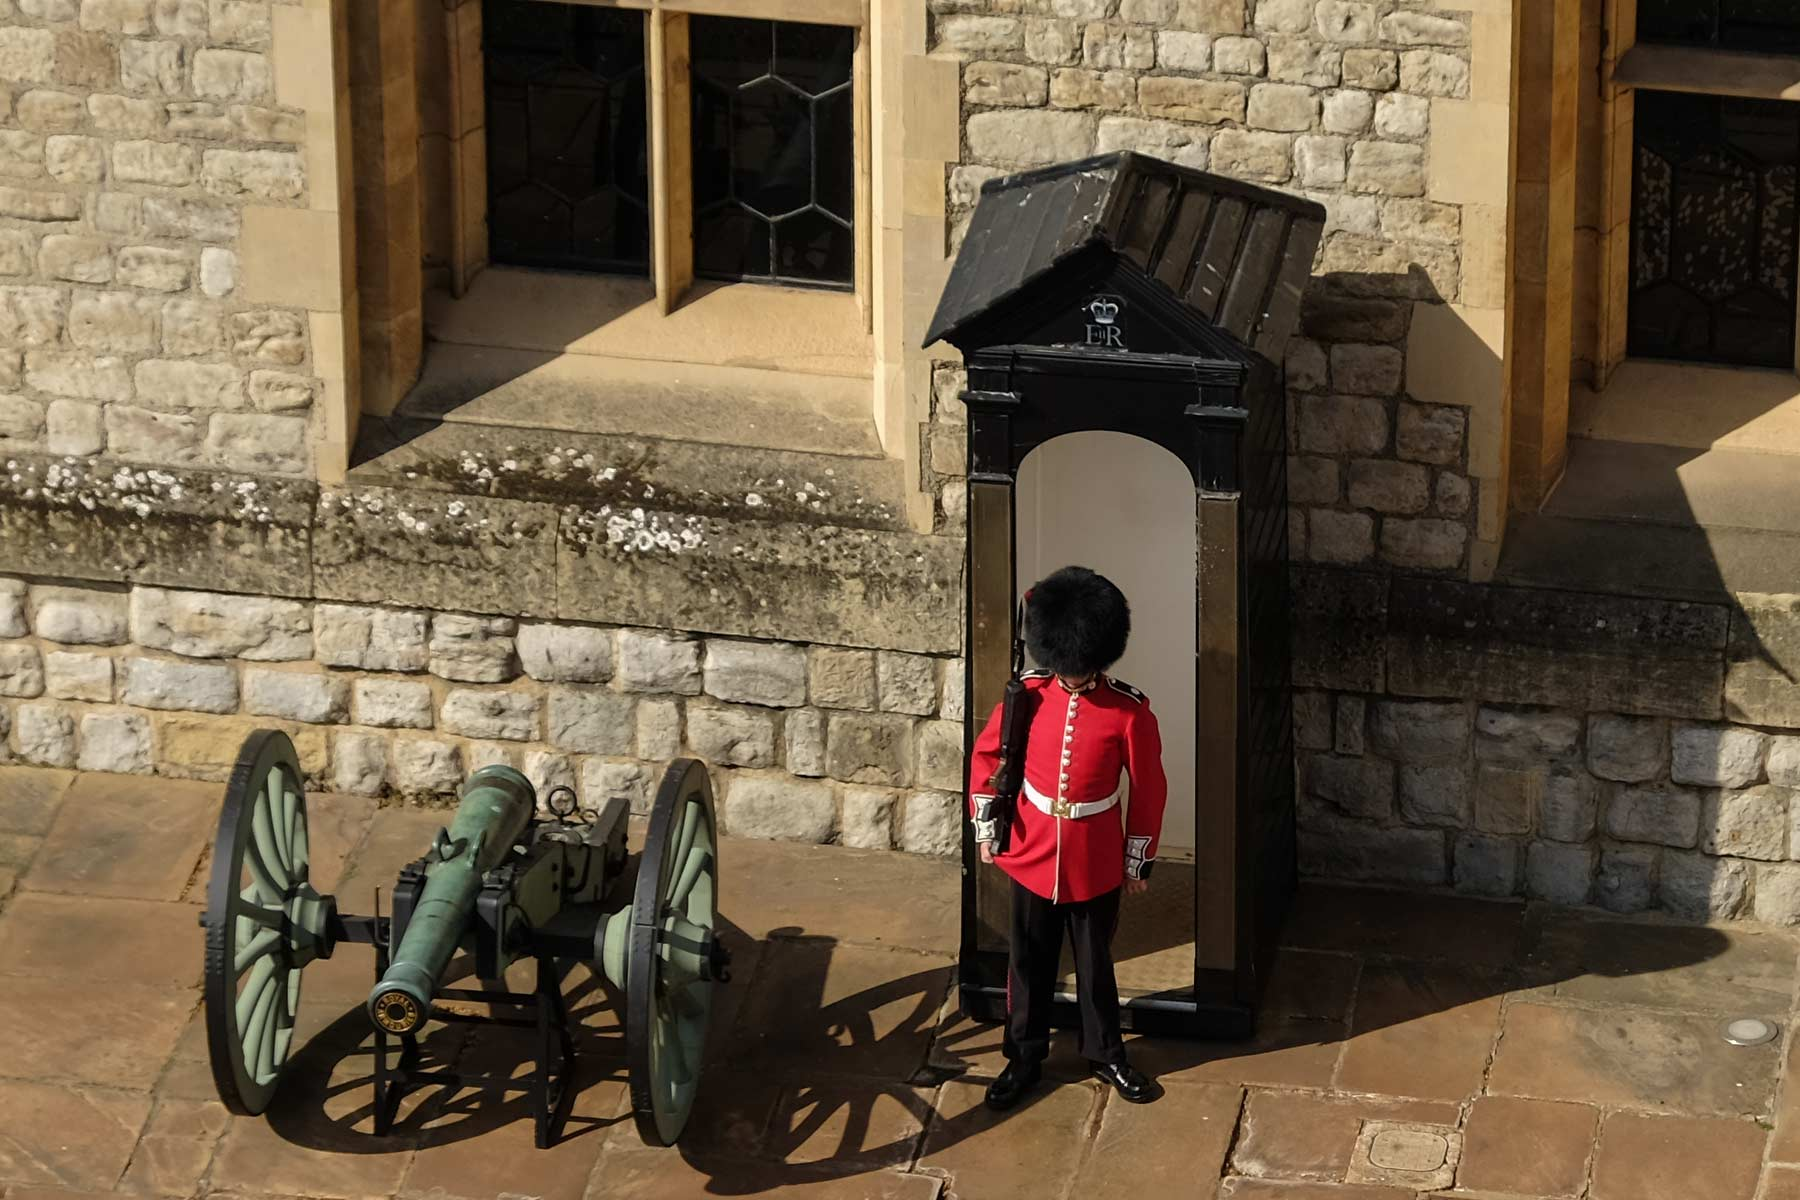 Queen's Guard im Tower of London in London, England